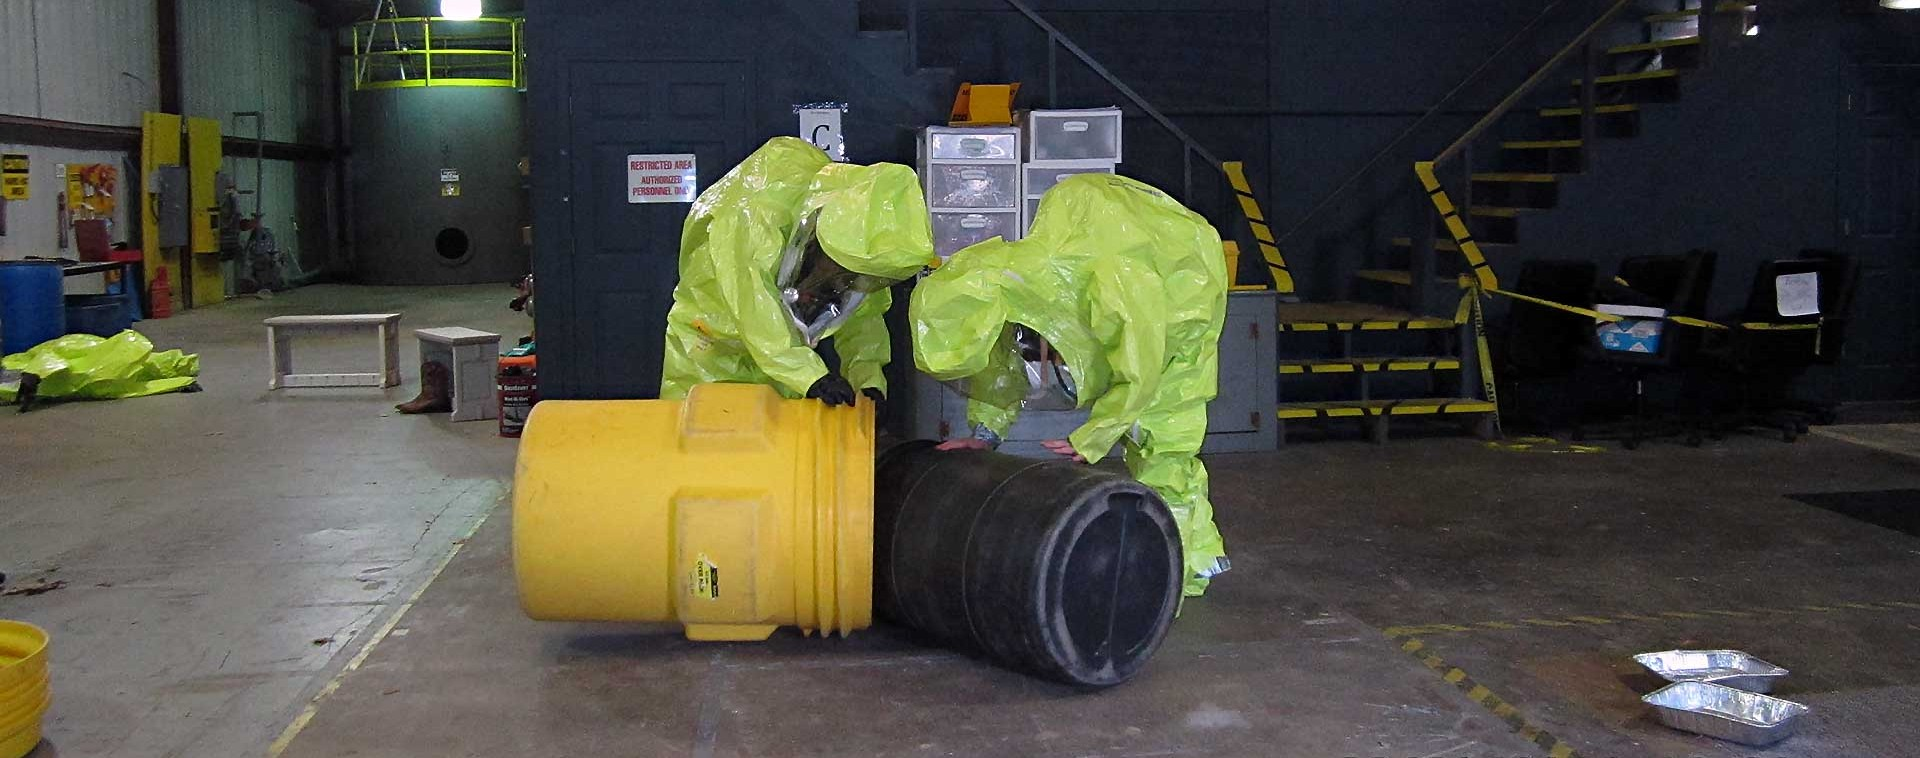 hazmat-suits-barrel-e1409111462263